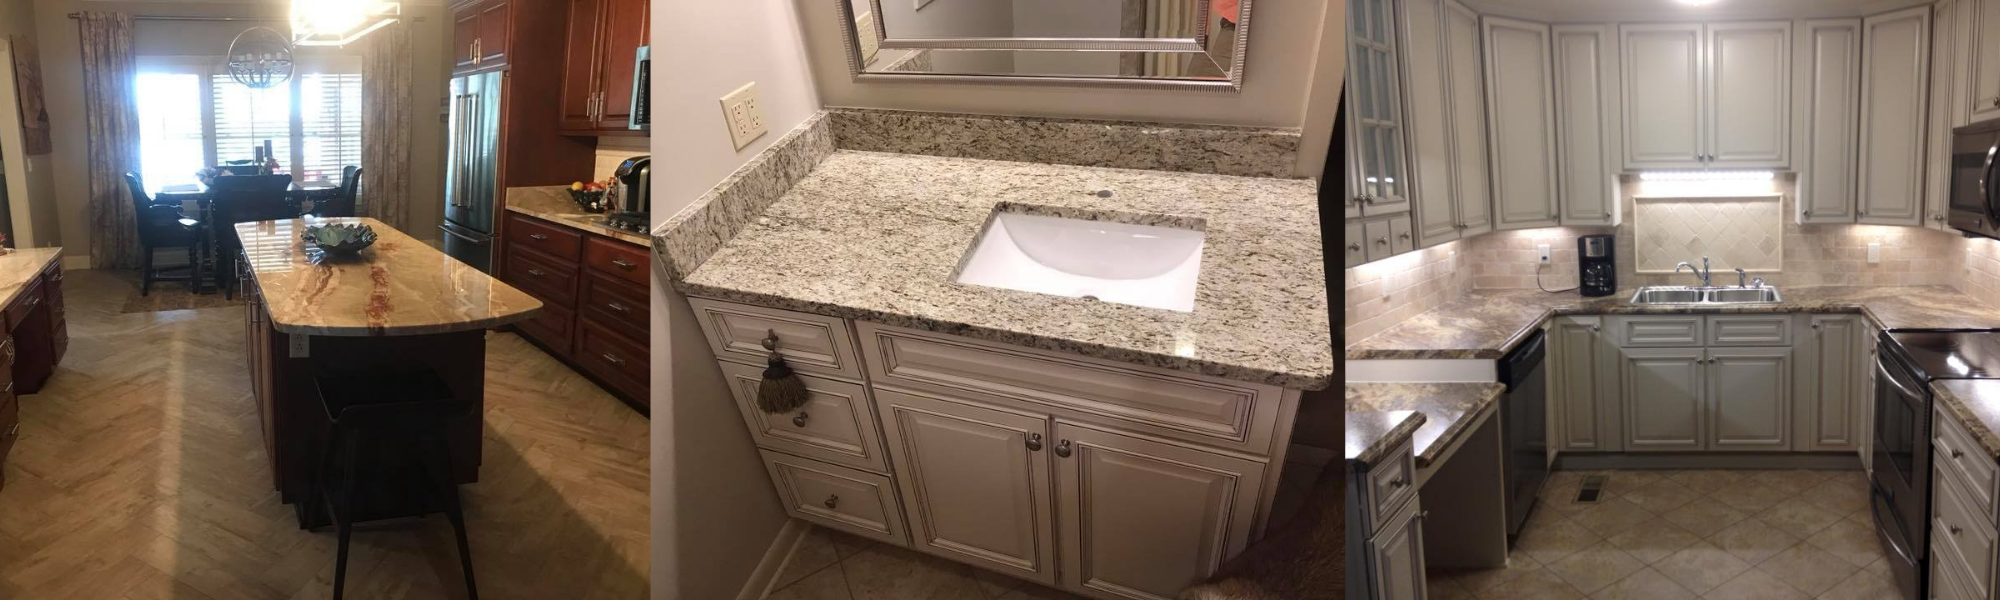 Flooring, Cabinets and Countertops